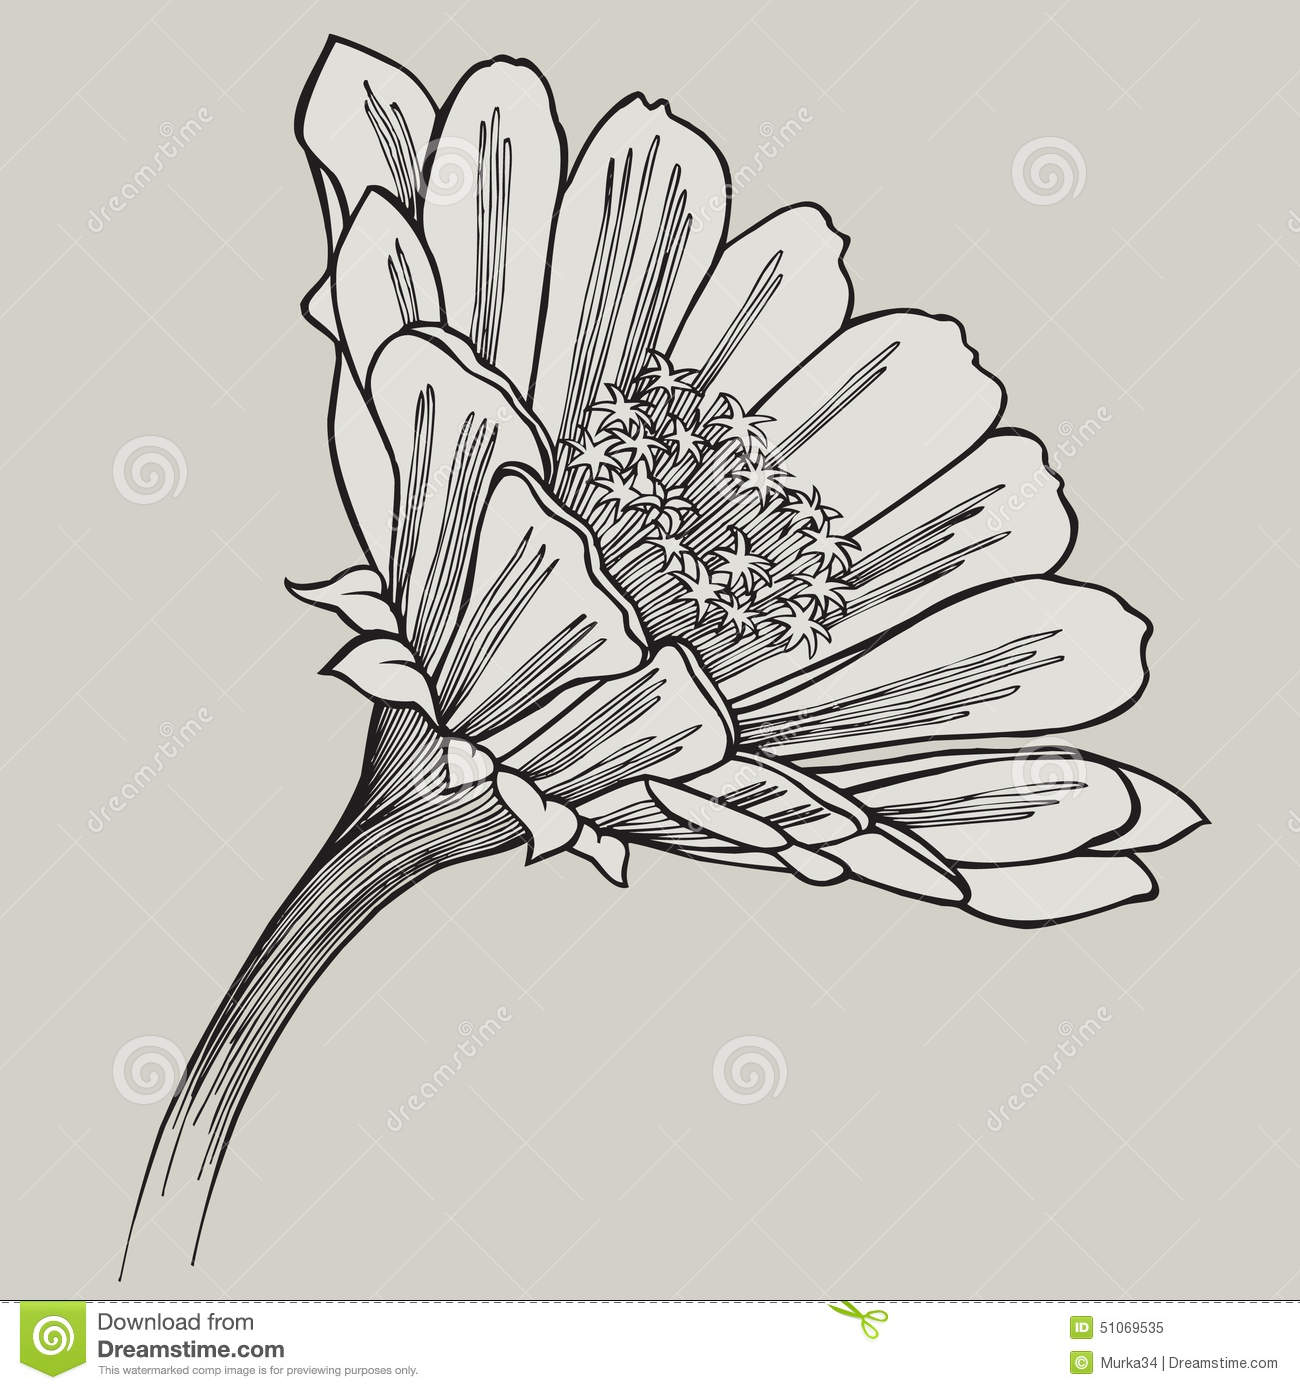 Zinnia Line Drawing : Zinnia flower hand drawing vector illustration stock